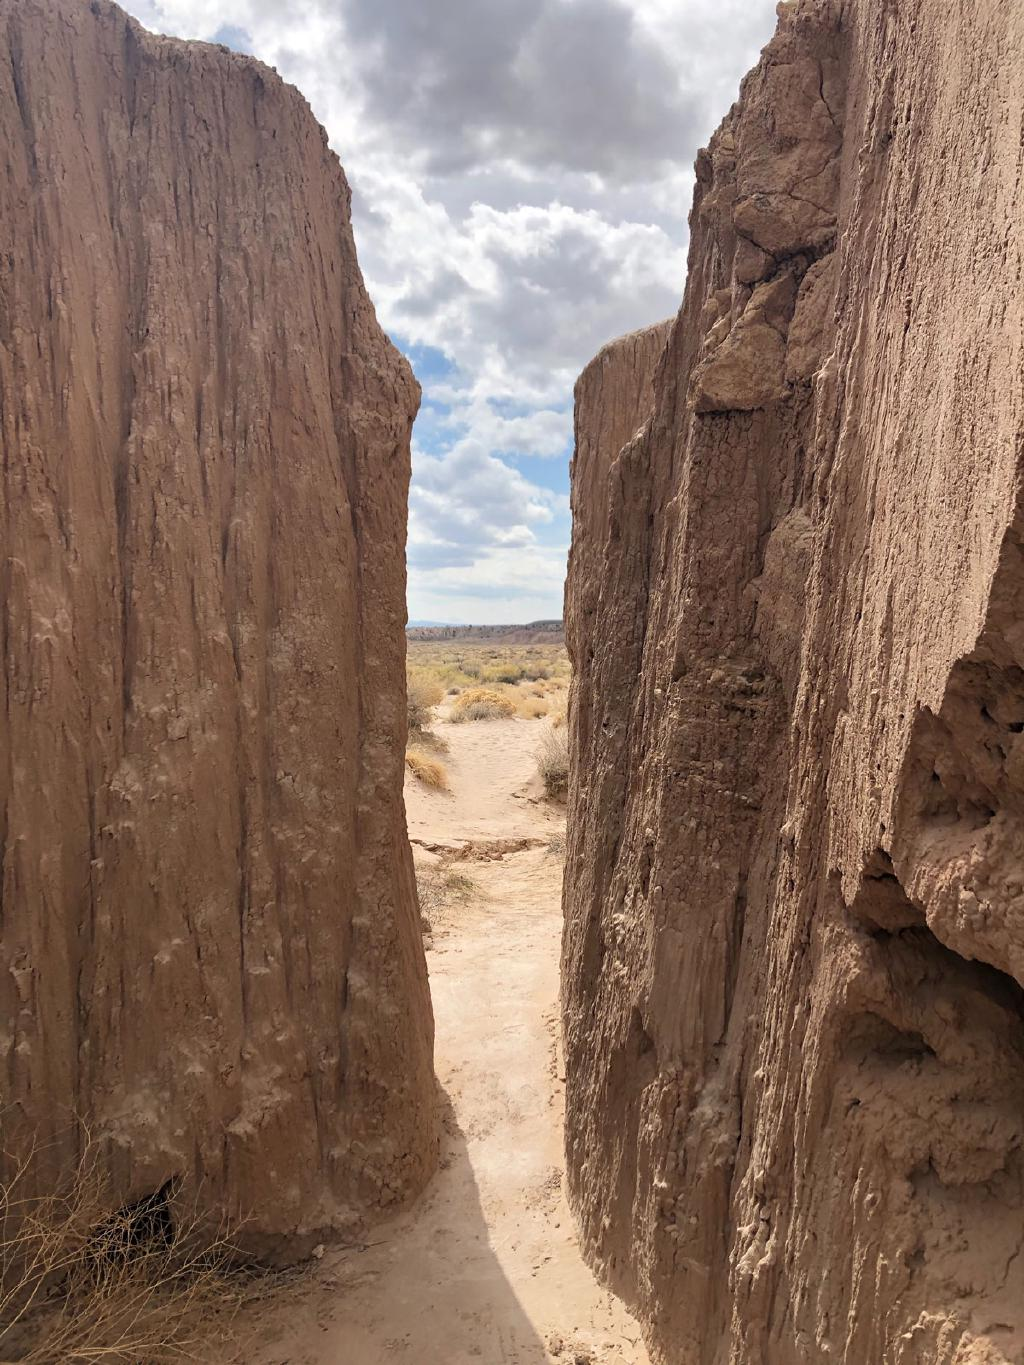 The camera peers through a gap between two red-stone walls to see a desert landscape beyond.